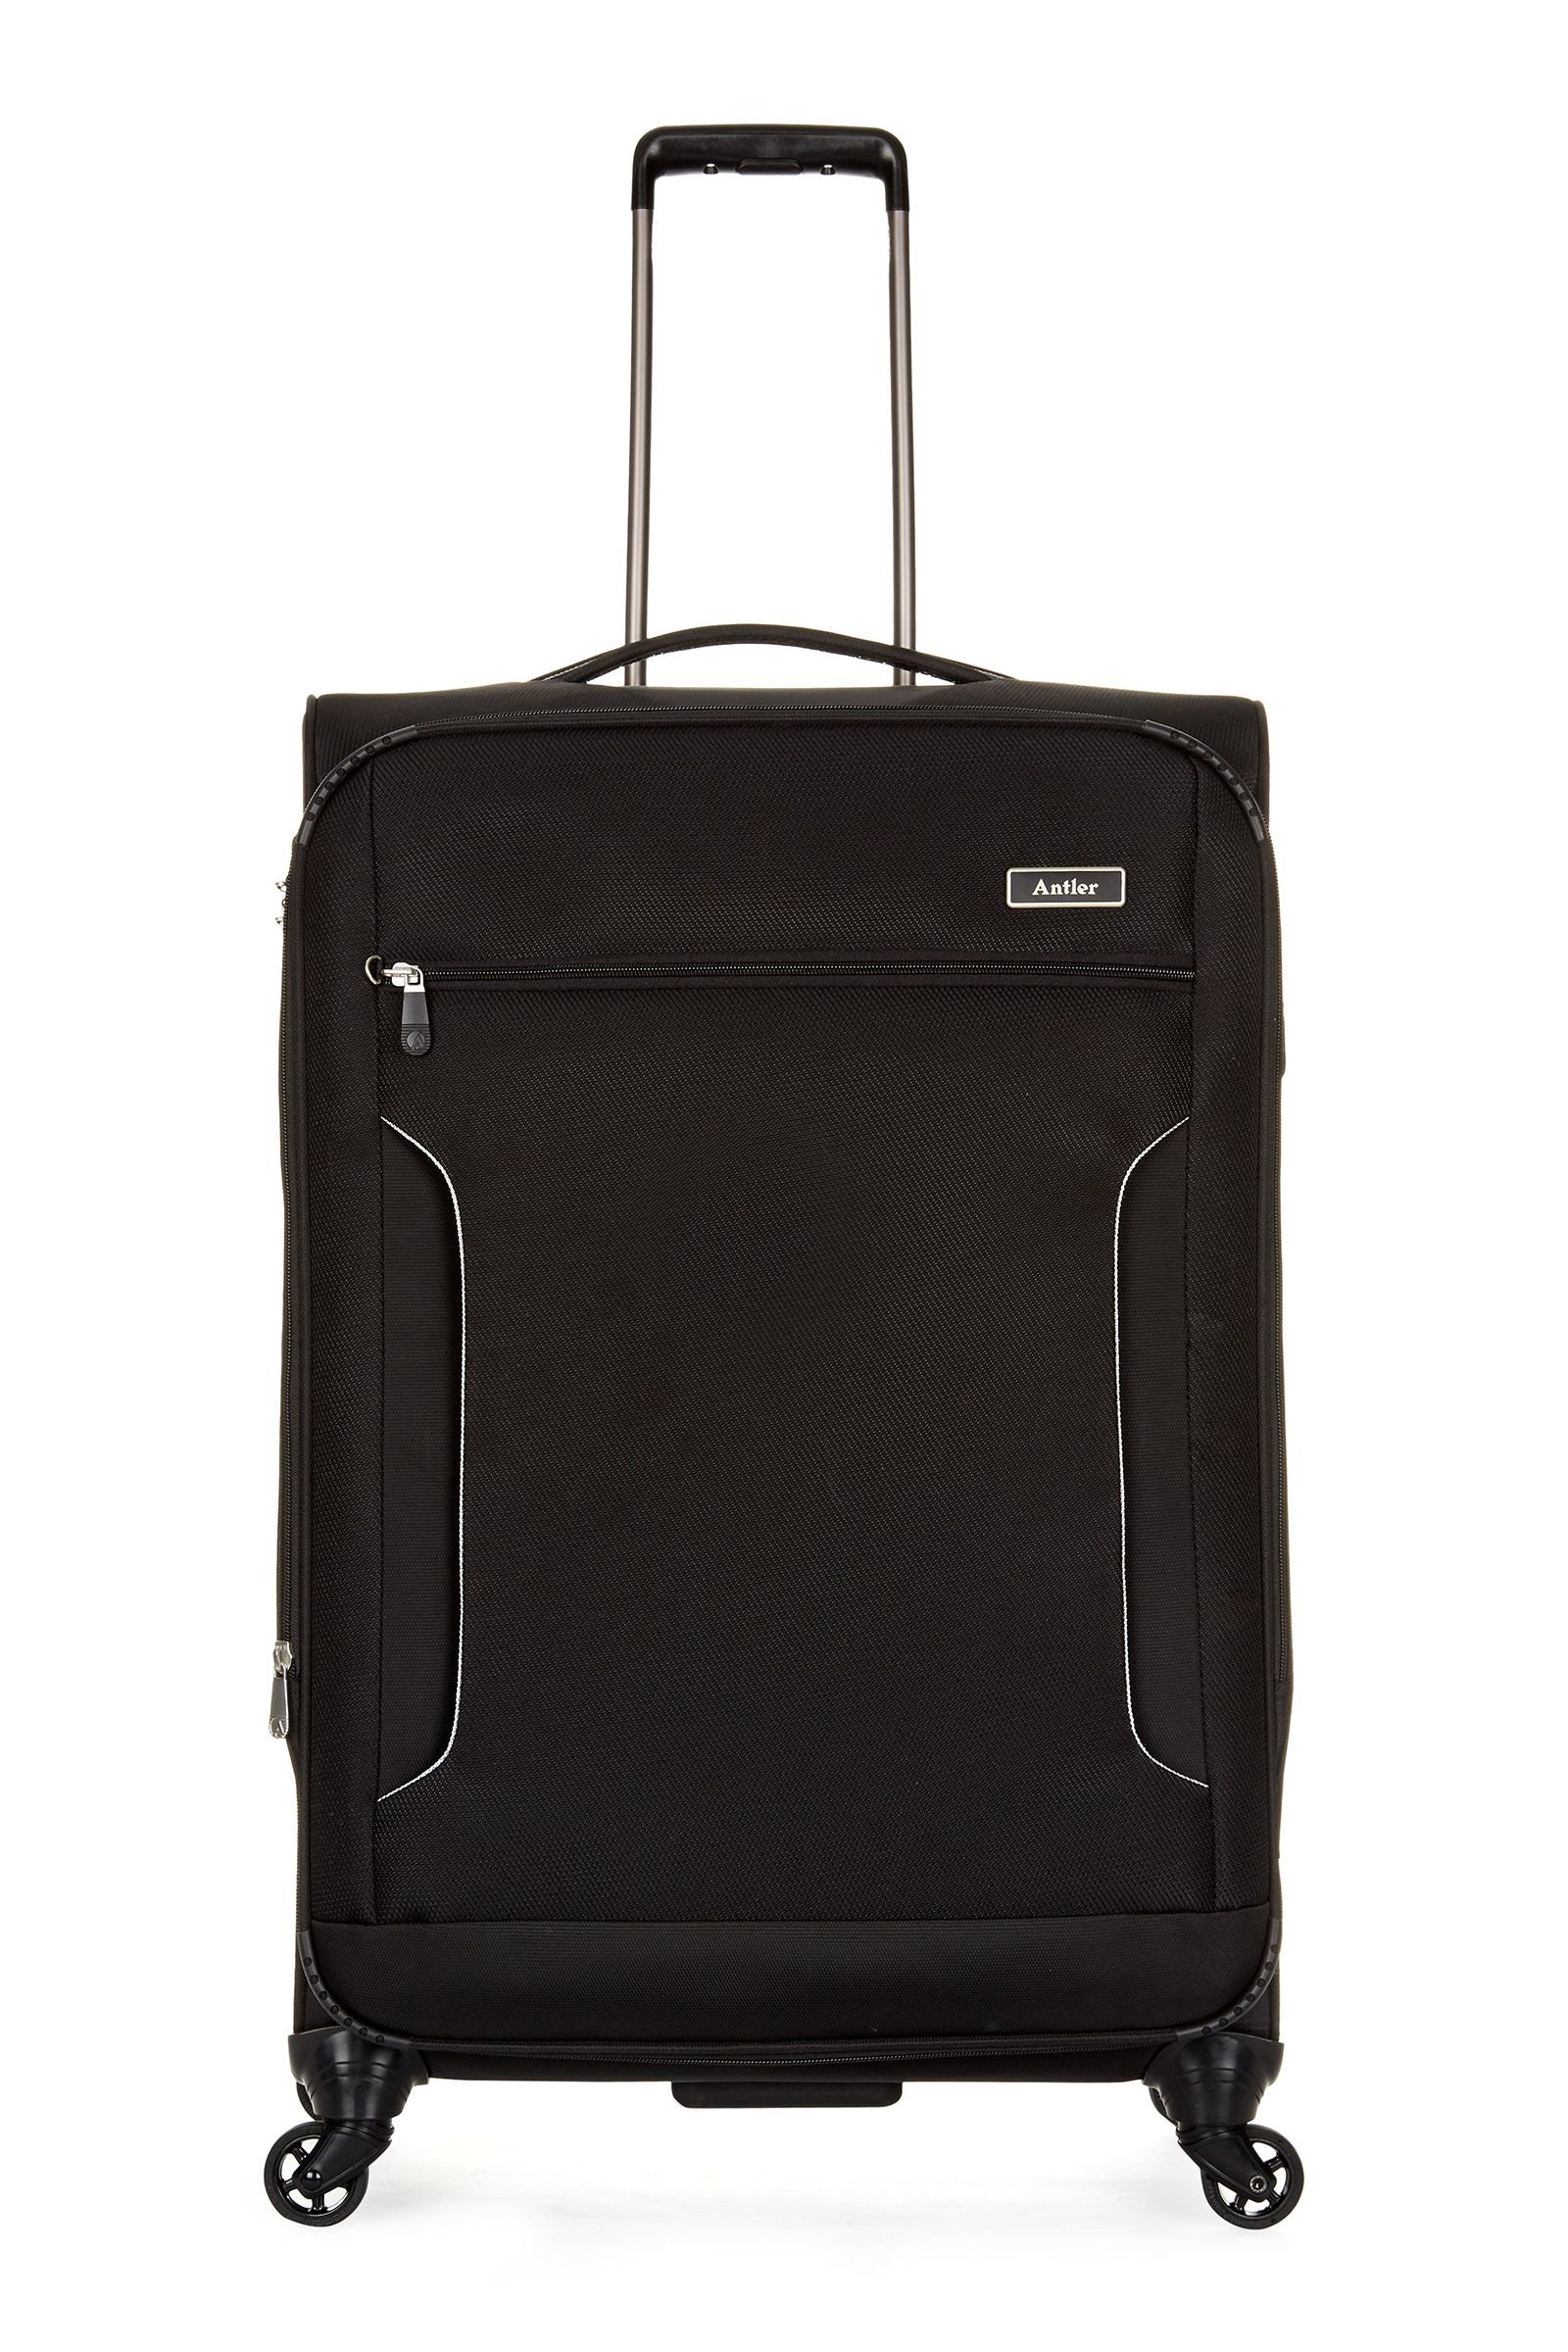 Antler Cyberlite II black 4 wheel soft large suitcase Black